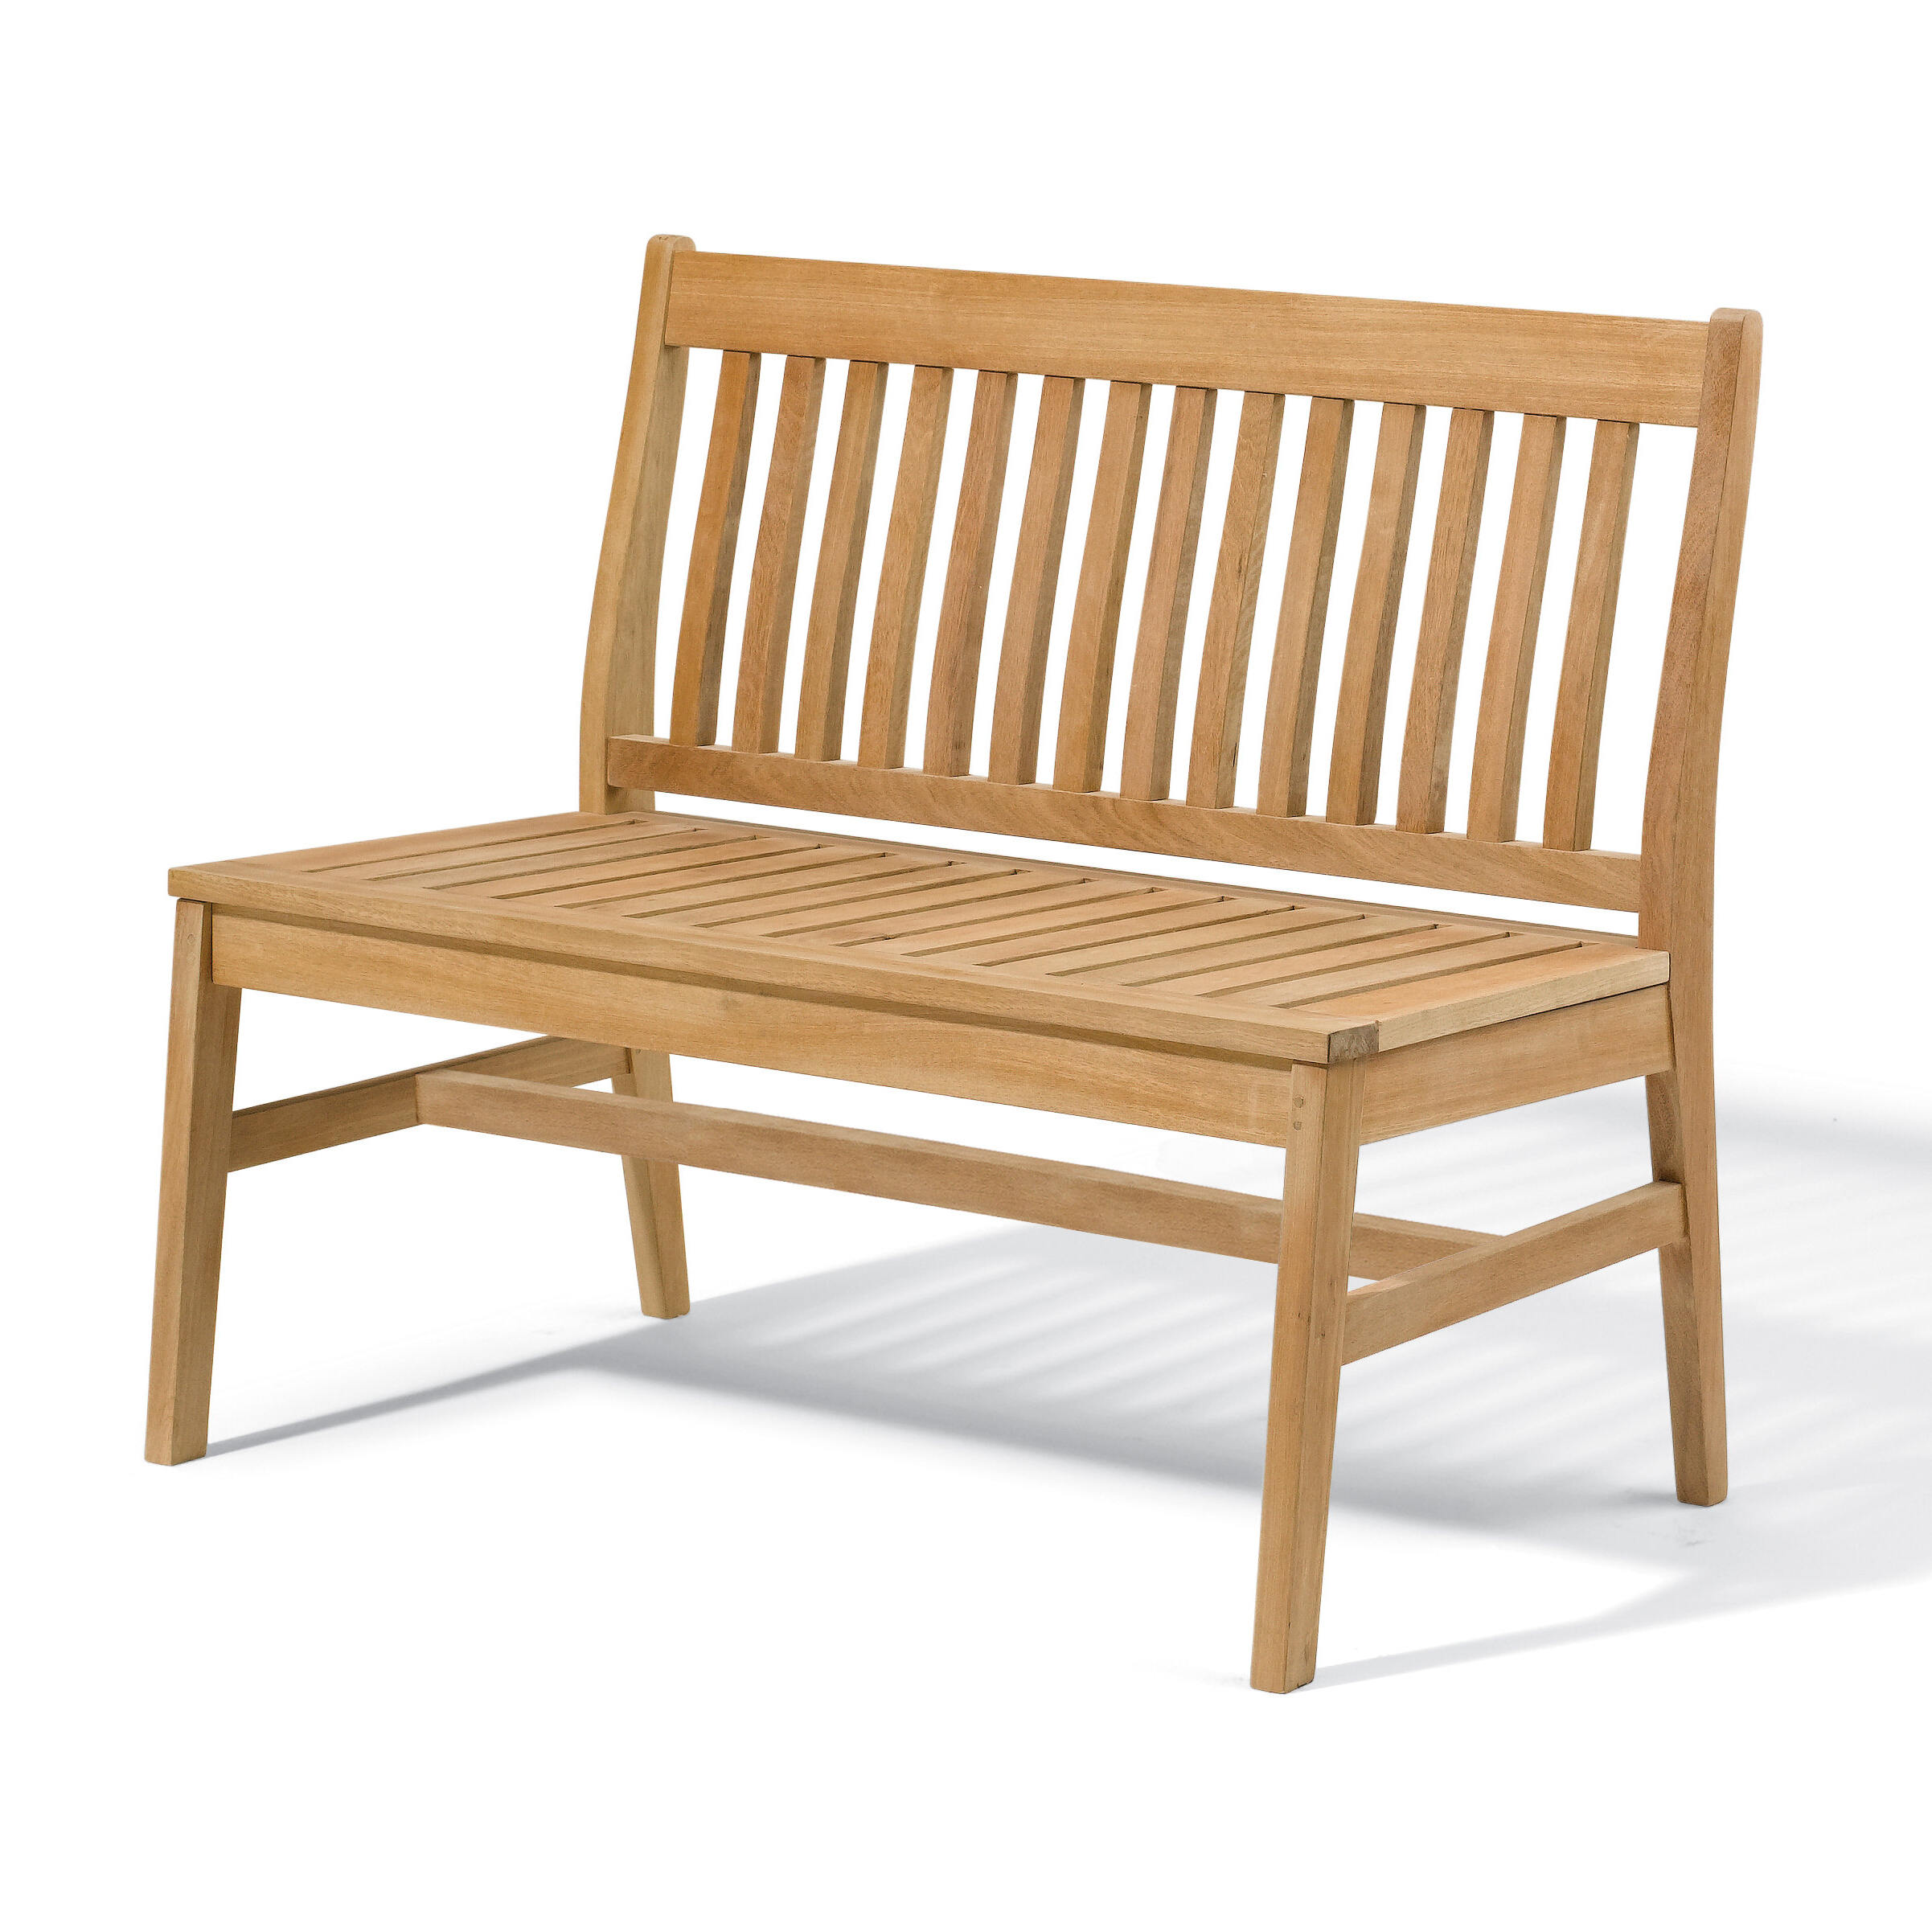 Fashionable Myres Wooden Garden Bench Intended For Manchester Wooden Garden Benches (View 11 of 30)